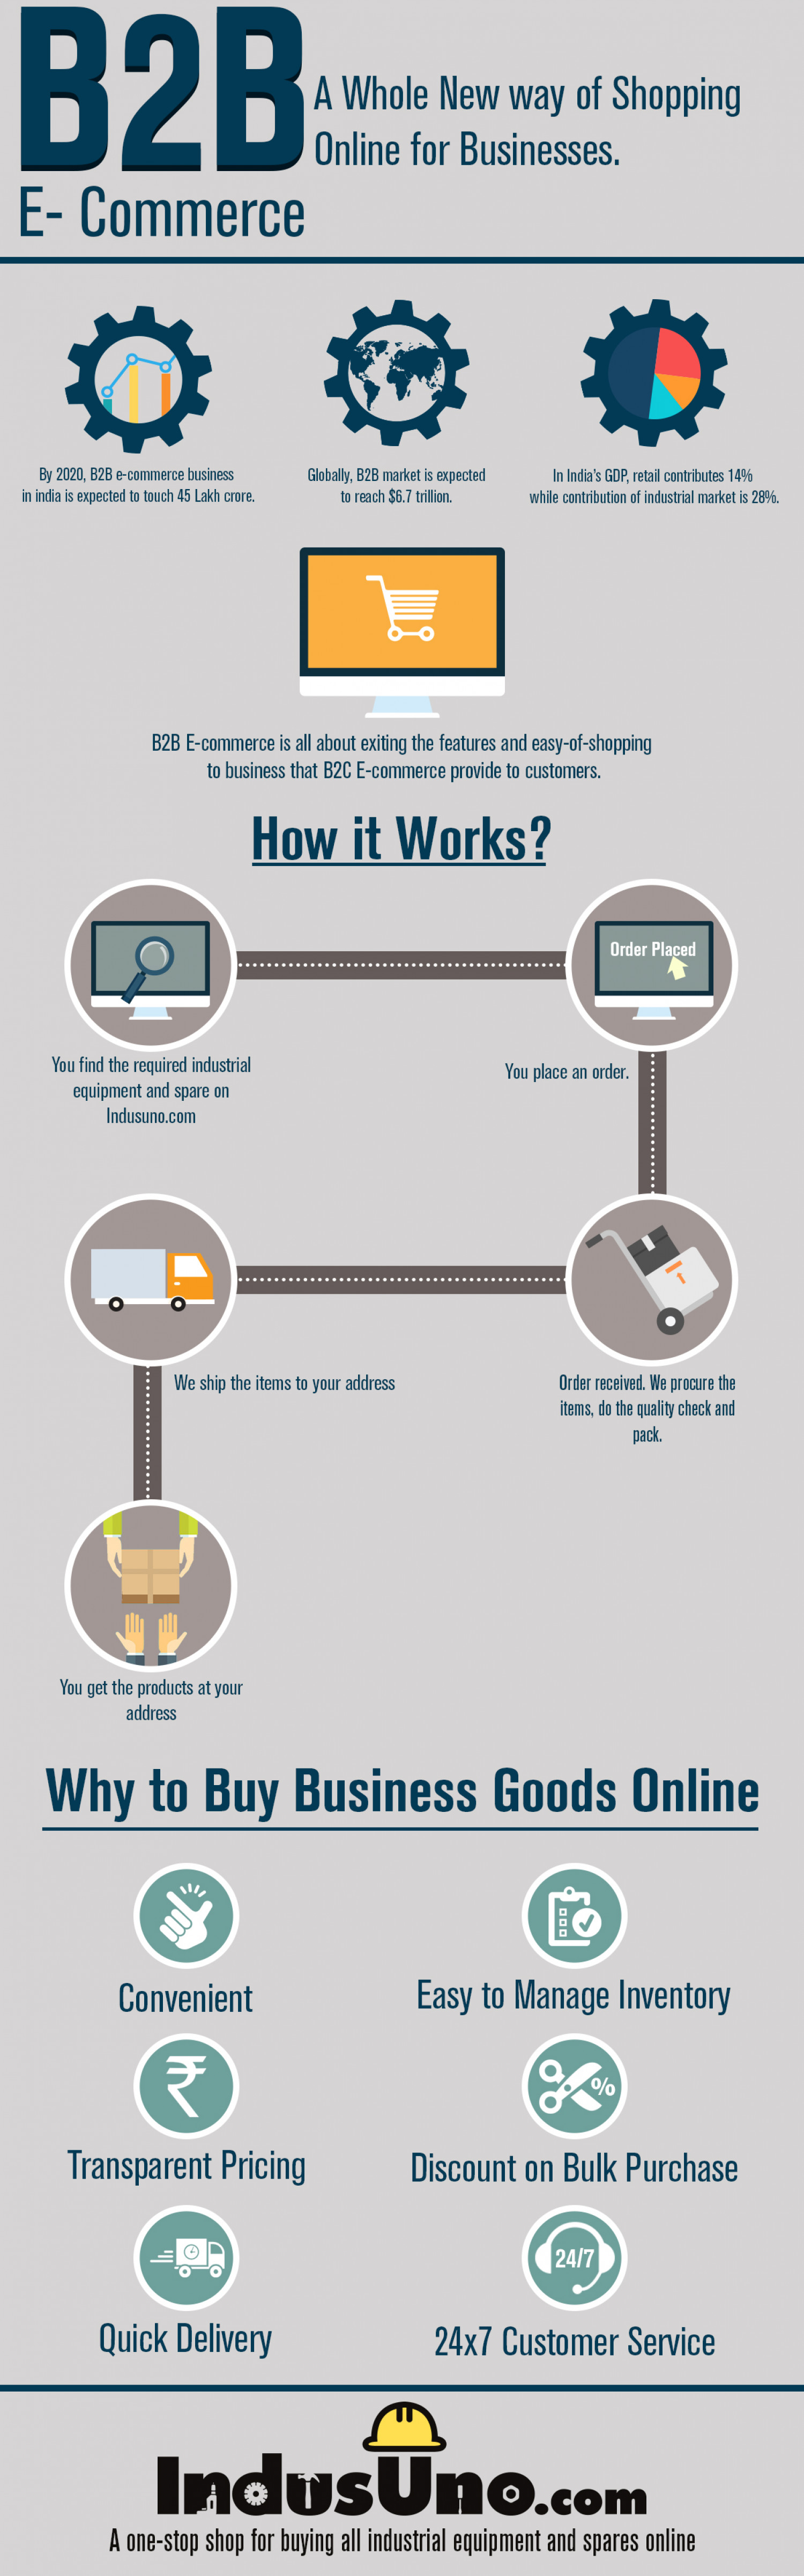 B2B Going Online - Why B2B E-commerce is the future? Infographic